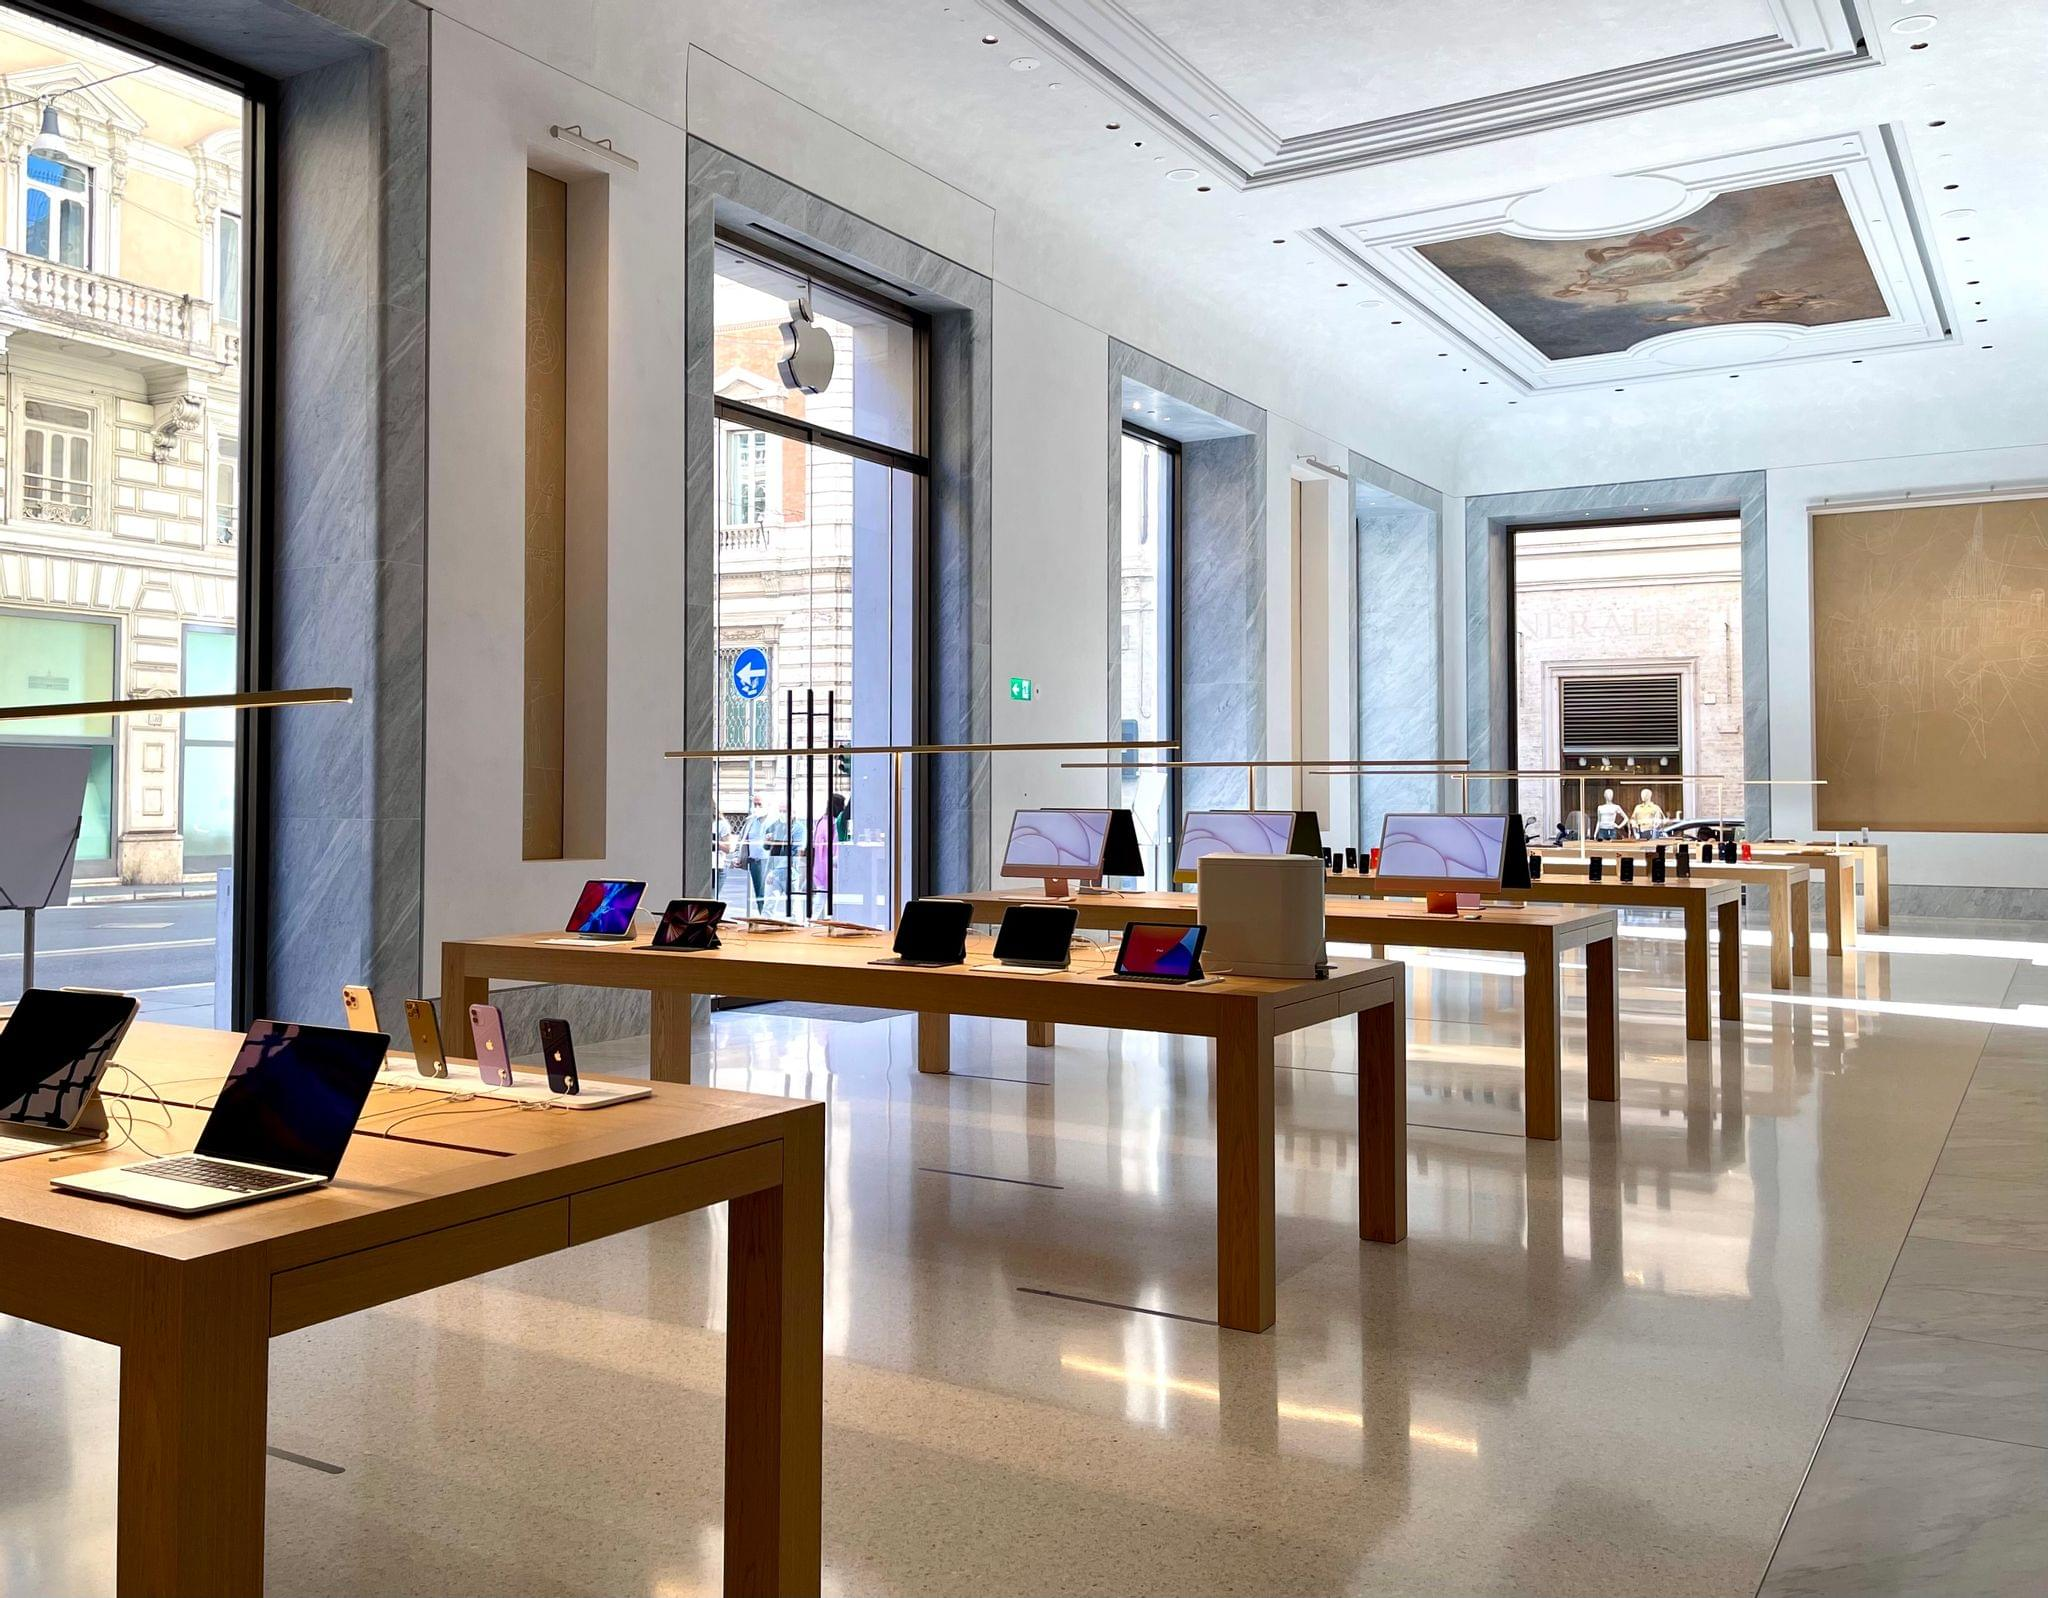 Apple devices, restored ceiling paintings, and the large entrance facing Via del Corso.